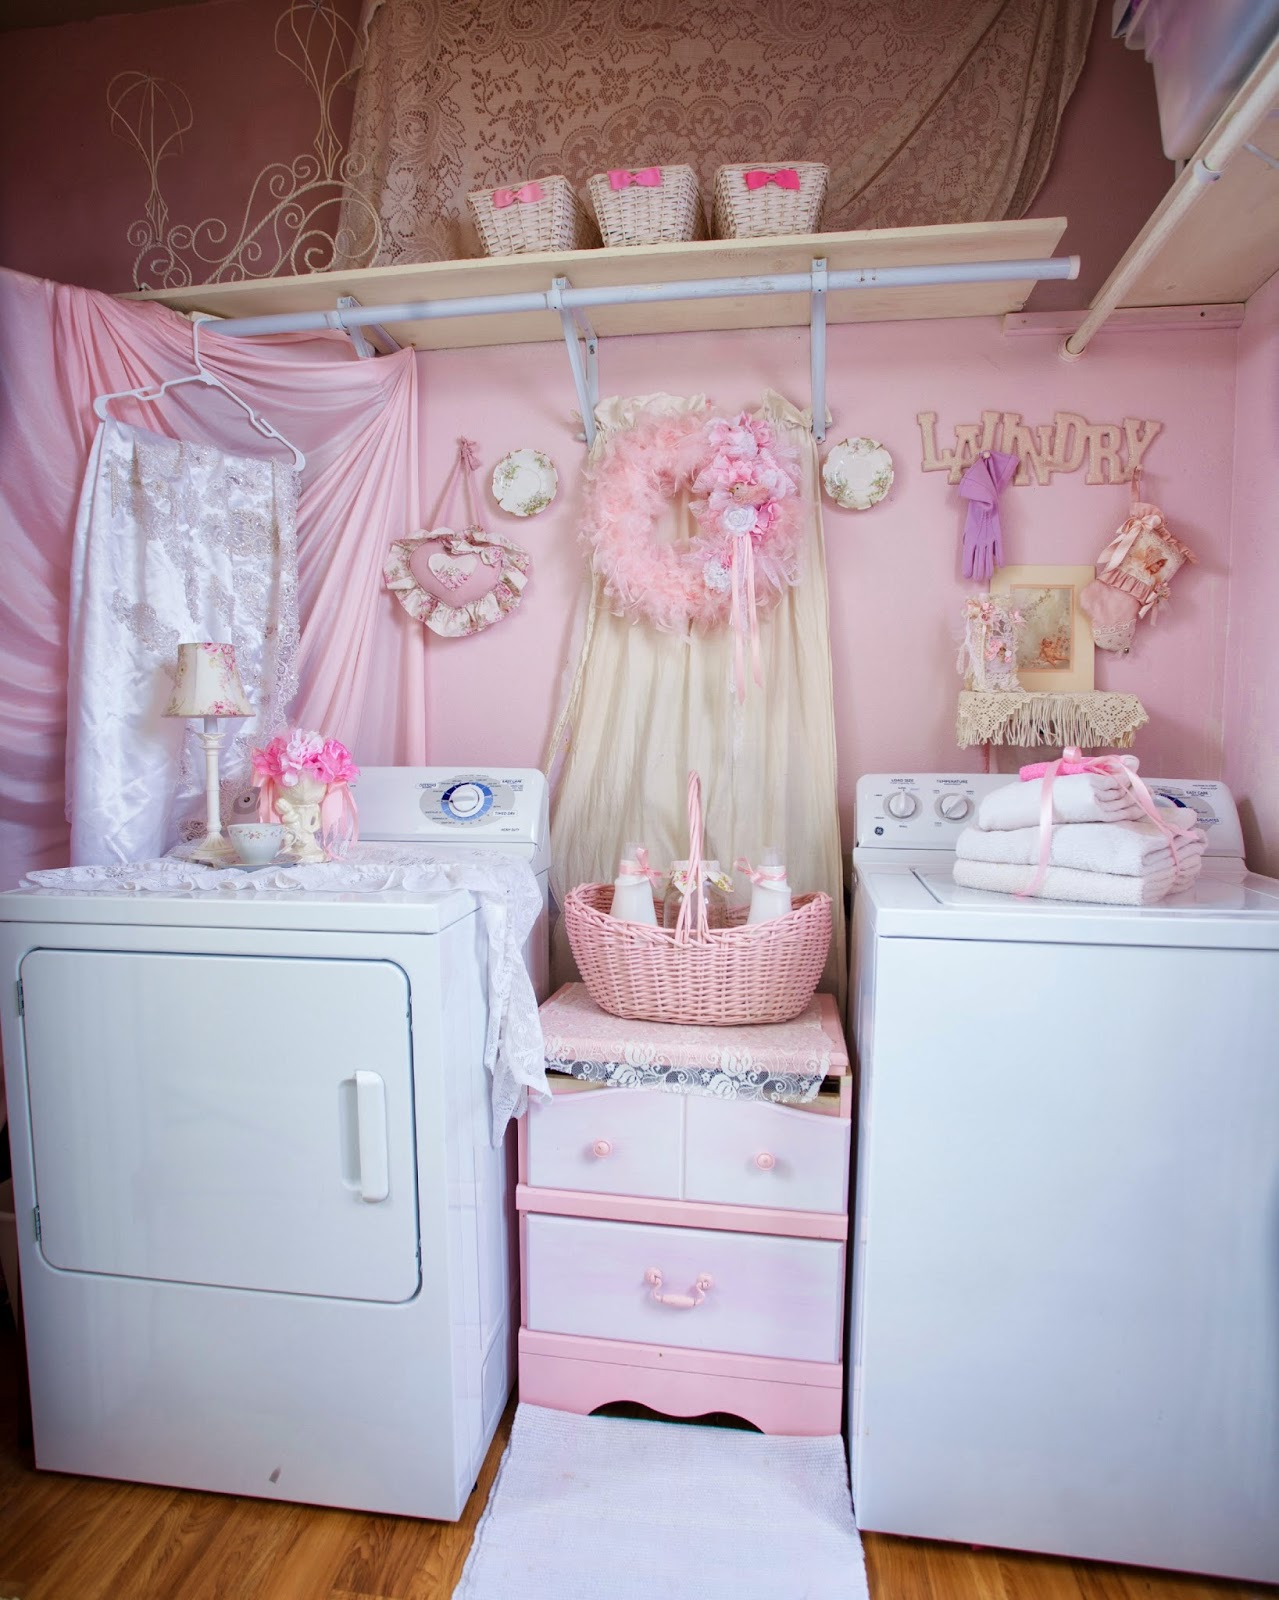 Pink Shabby Chic Dresser: Olivia's Romantic Home: Shabby Chic Pink Laundry Room